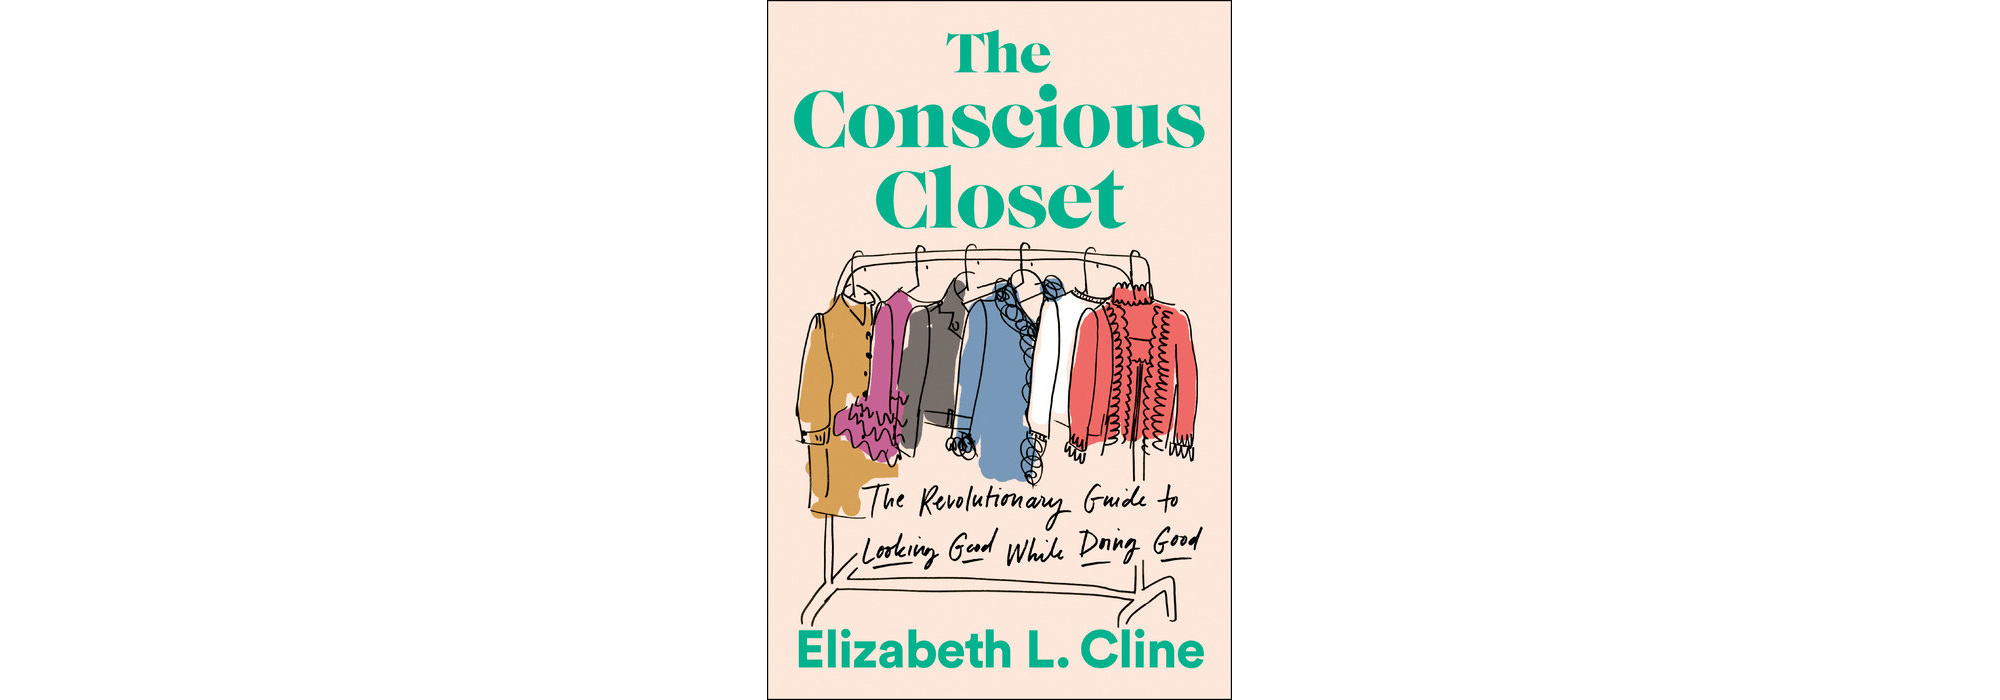 The Conscious Closet, by Elizabeth L. Cline